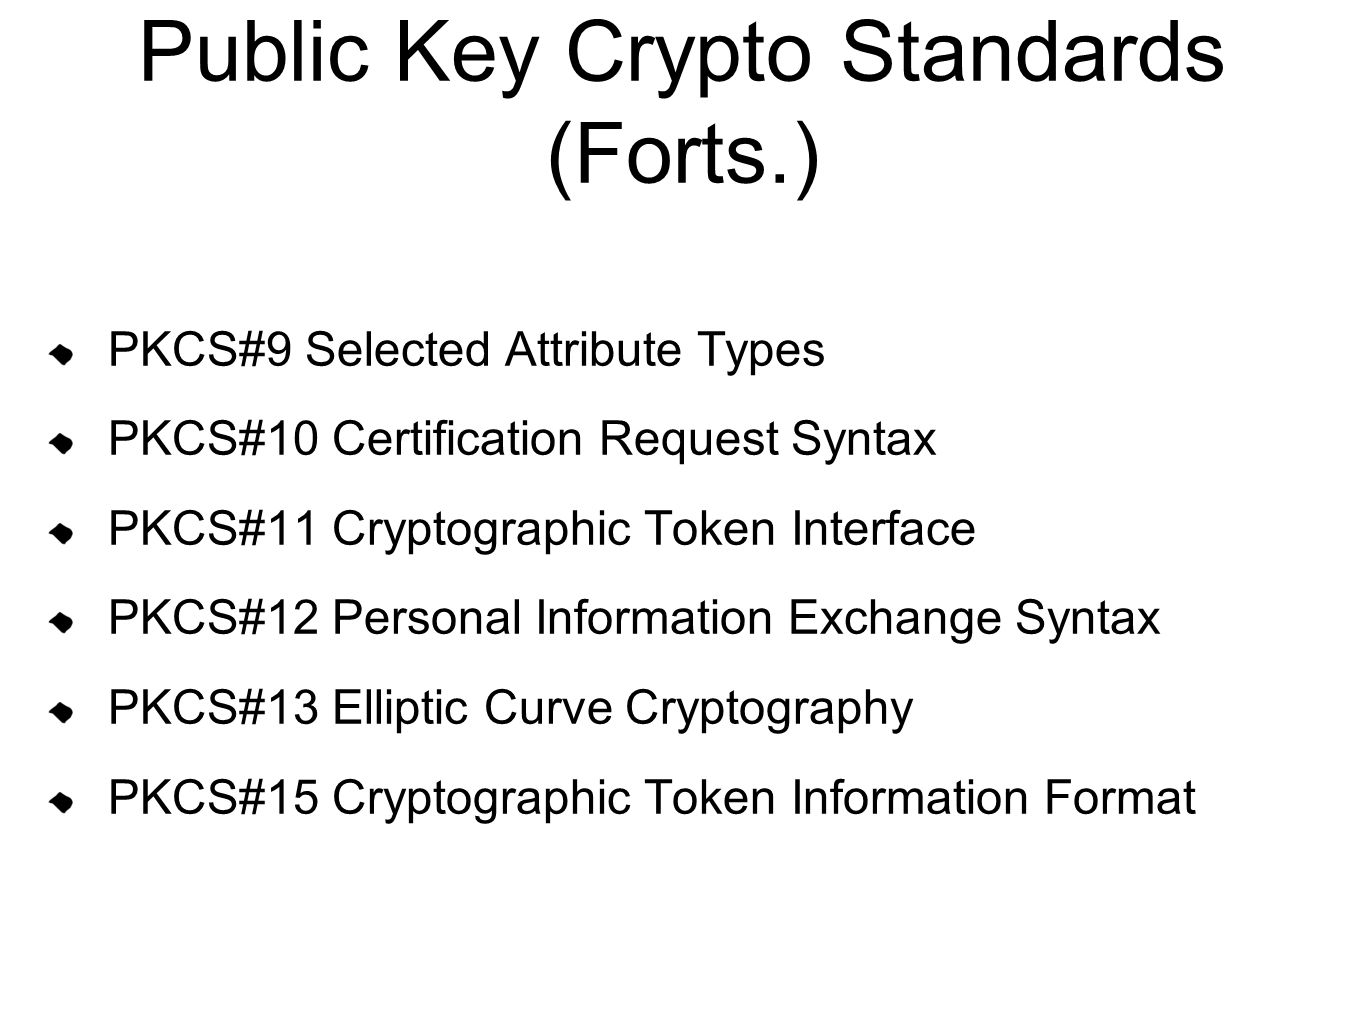 Public Key Crypto Standards (Forts.)